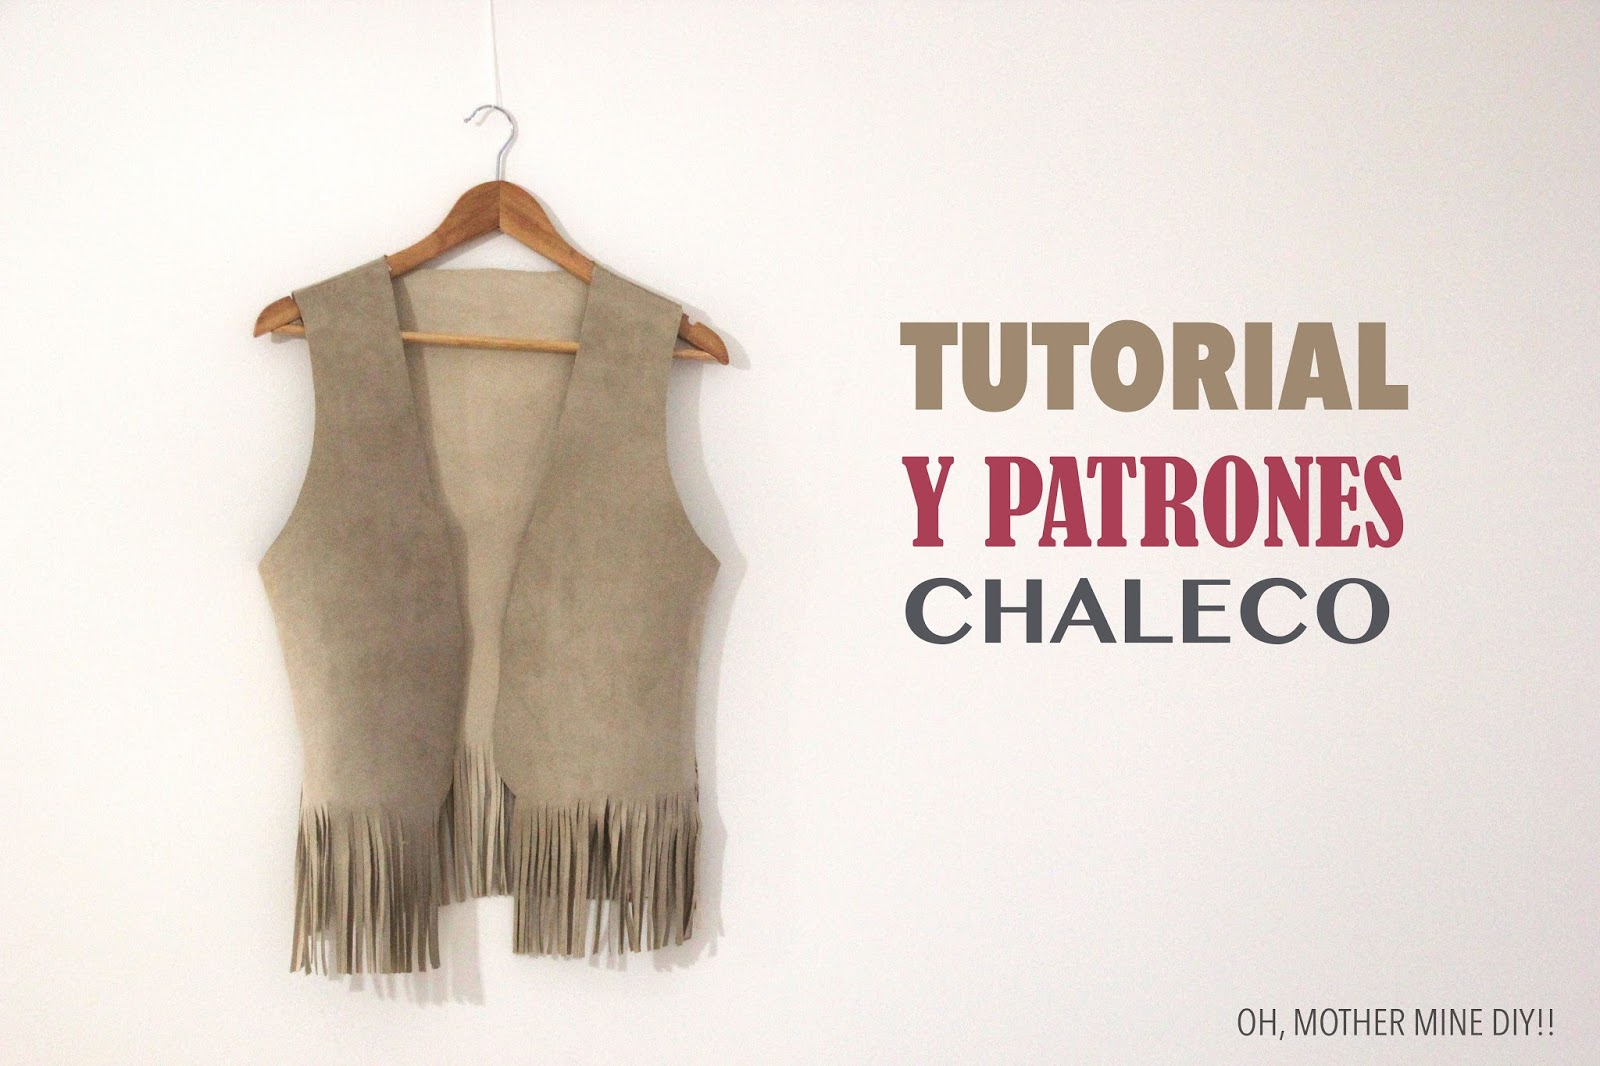 DIY Tutorial y patrones chaleco con flecos - Handbox Craft Lovers ...